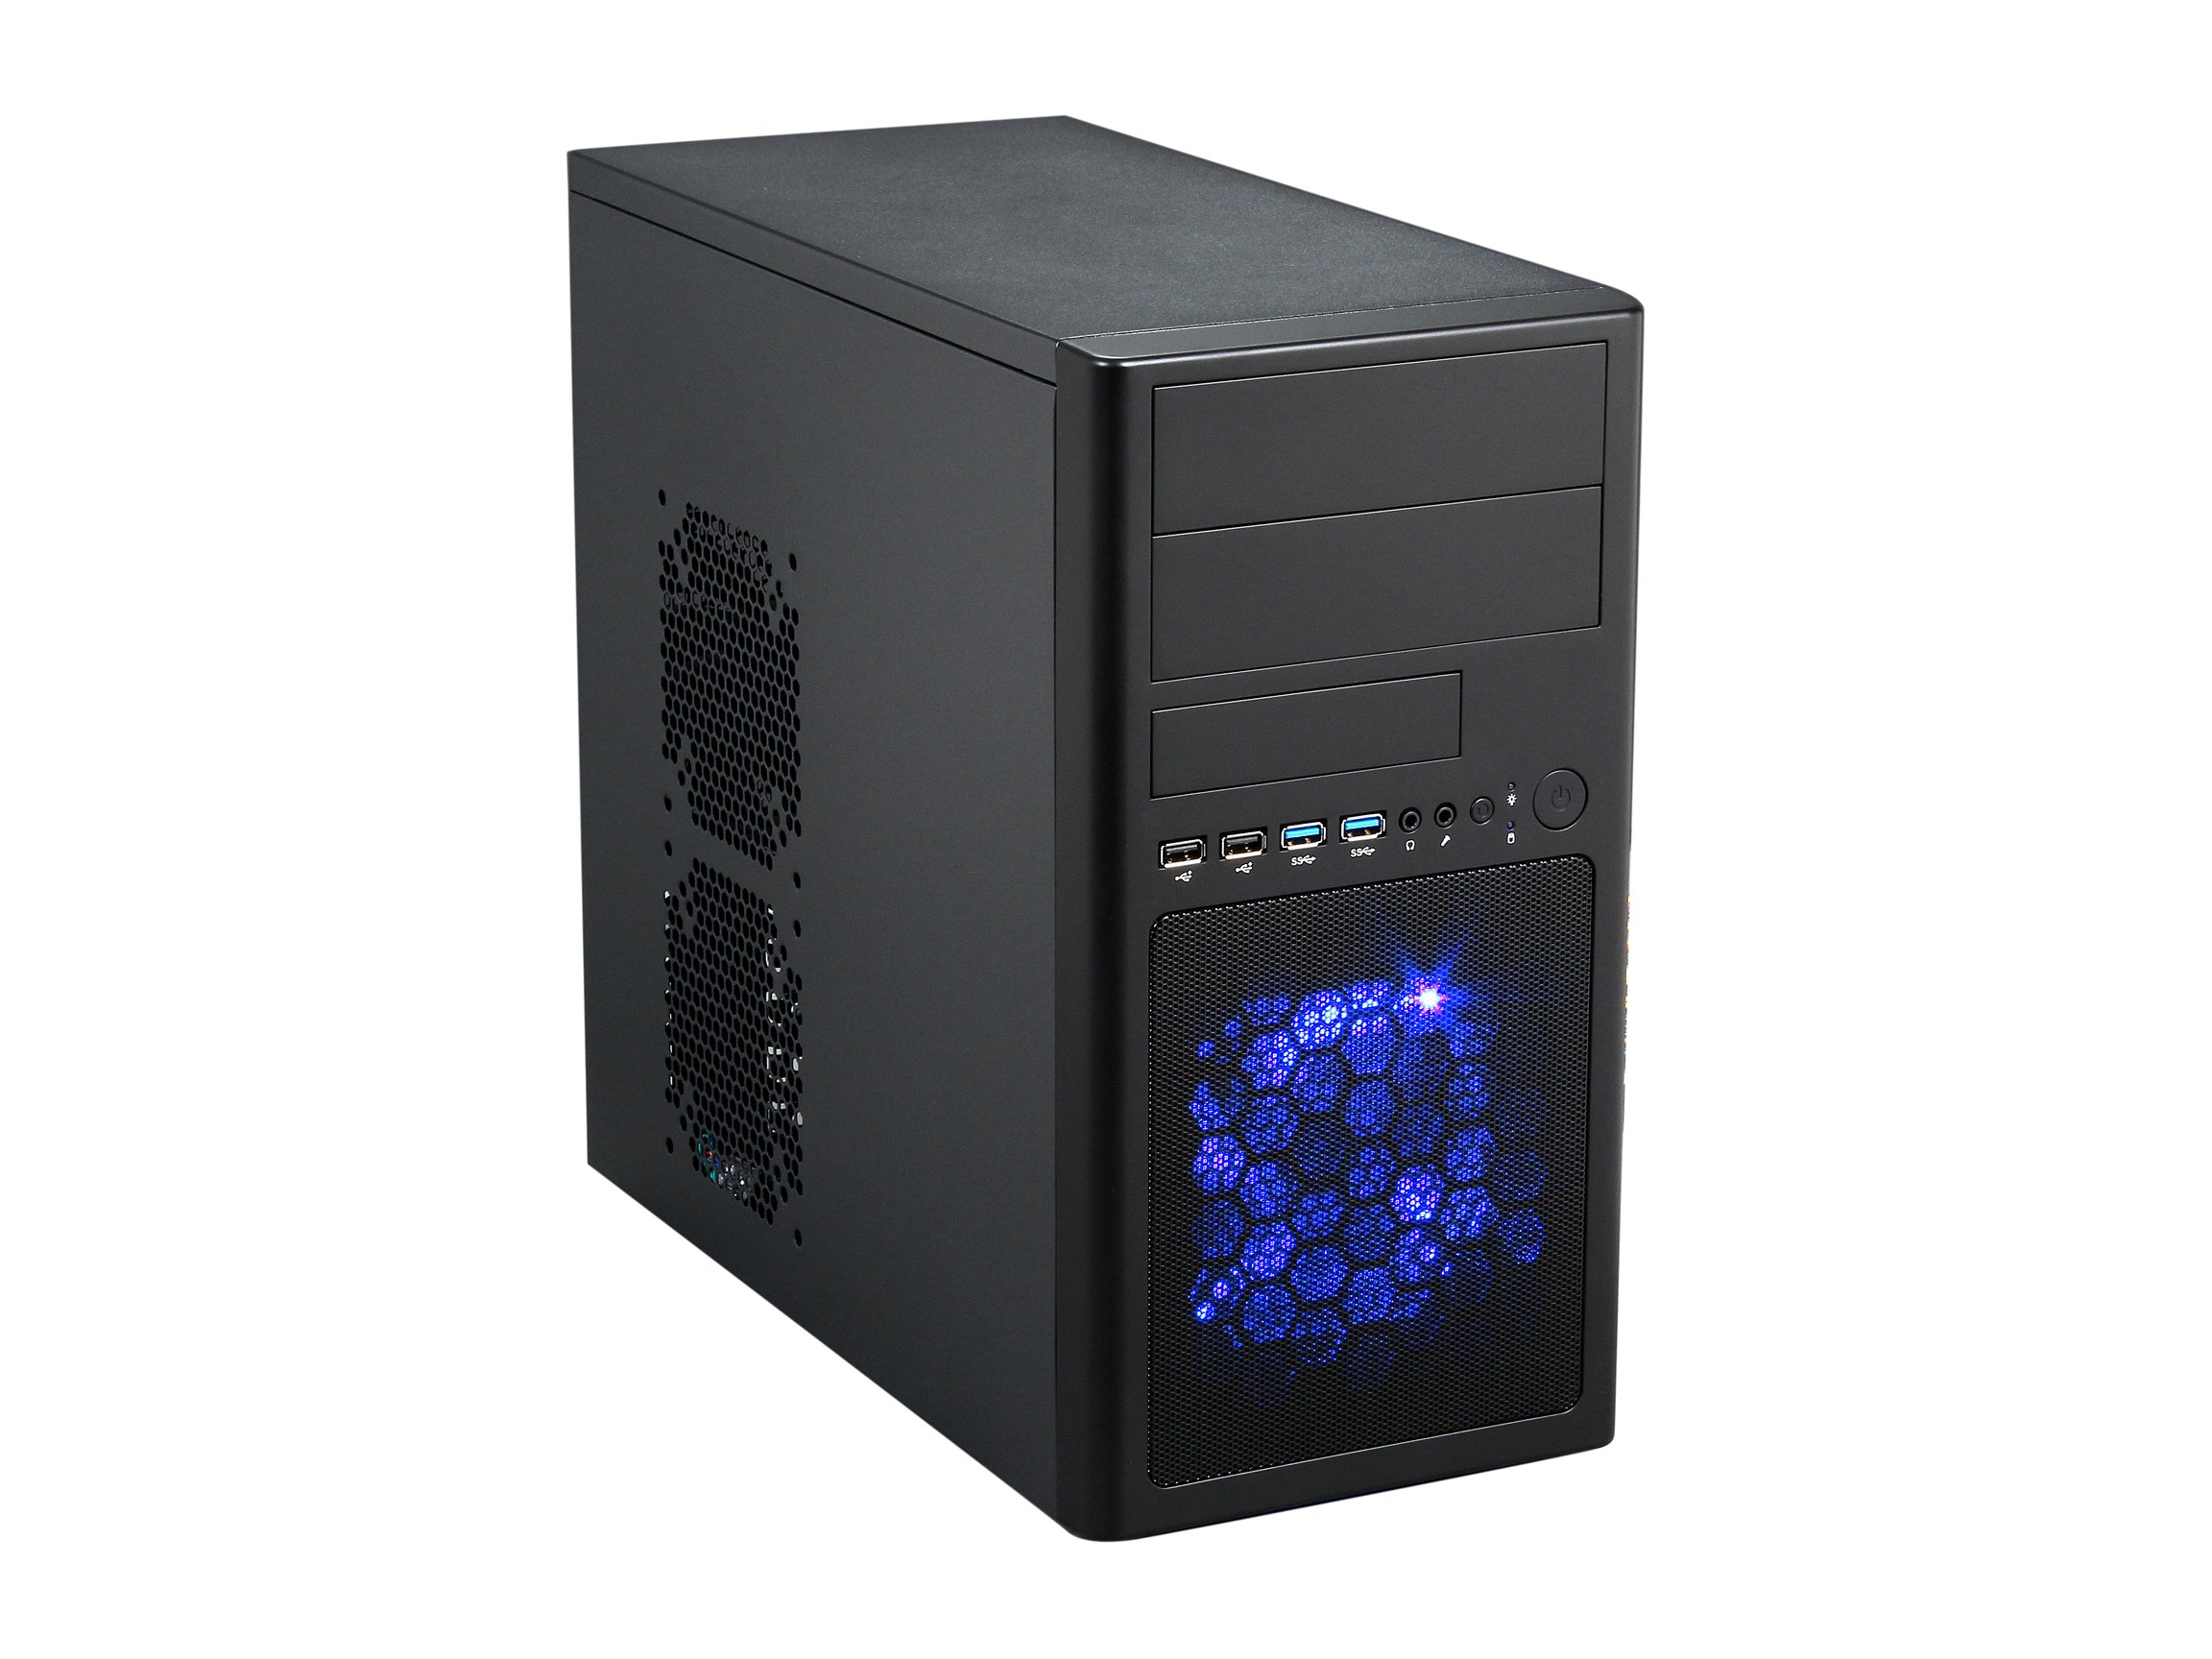 Rosewill Micro-ATX Mini Tower Computer Case with Dual USB 3.0, Dual Fans and 12.5-Inch Card LINE-M Black by Rosewill